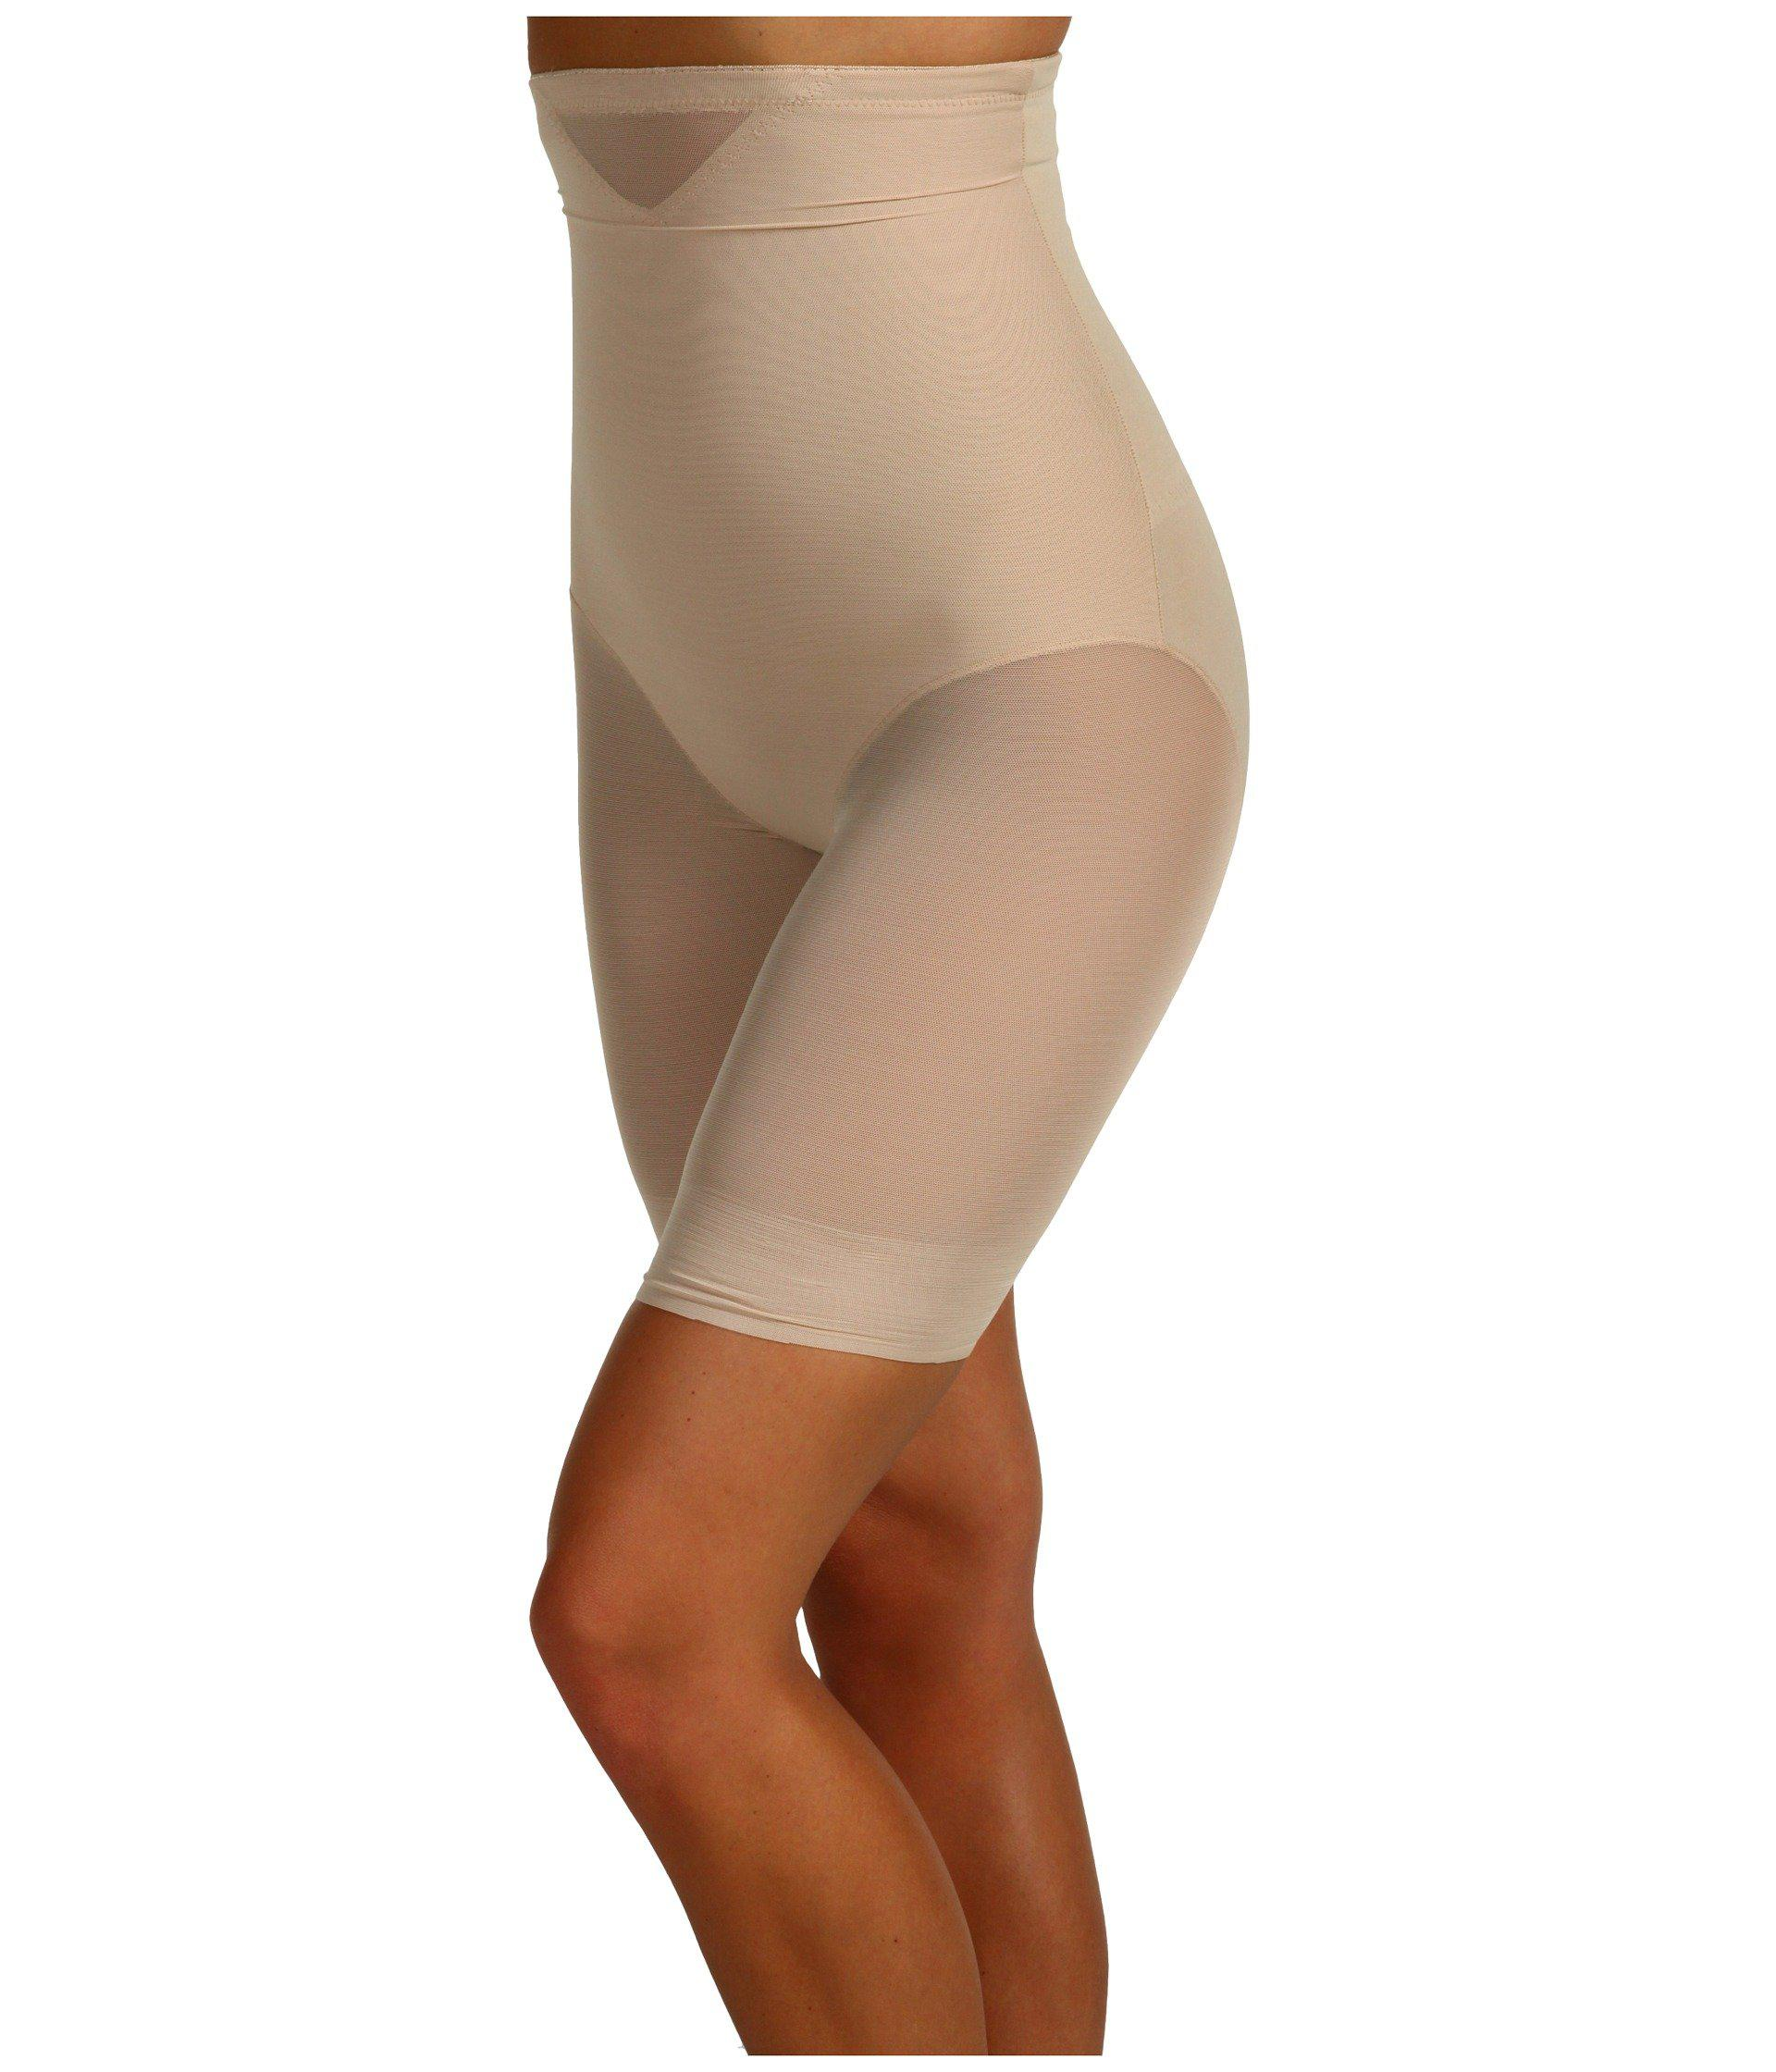 1b1c73f87a7 Lyst - Miraclesuit Extra Firm Sexy Sheer Shaping Hi-waist Thigh Slimmer  (black) Women s Underwear in Natural